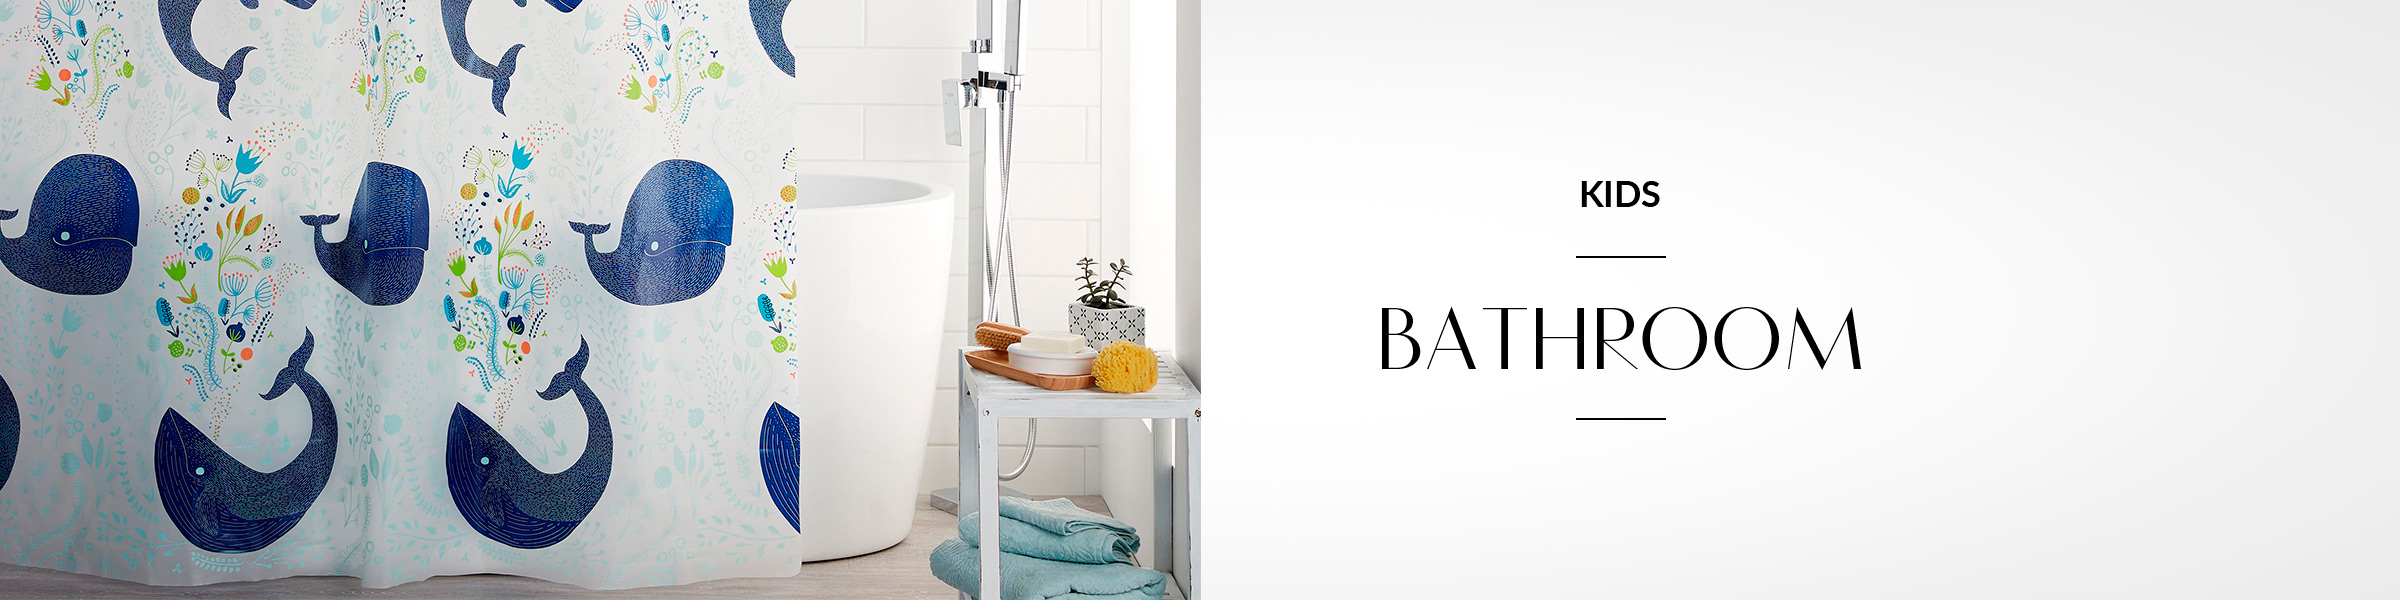 Shop Kids Bathroom Decor & Accessories Online in Canada | Simons